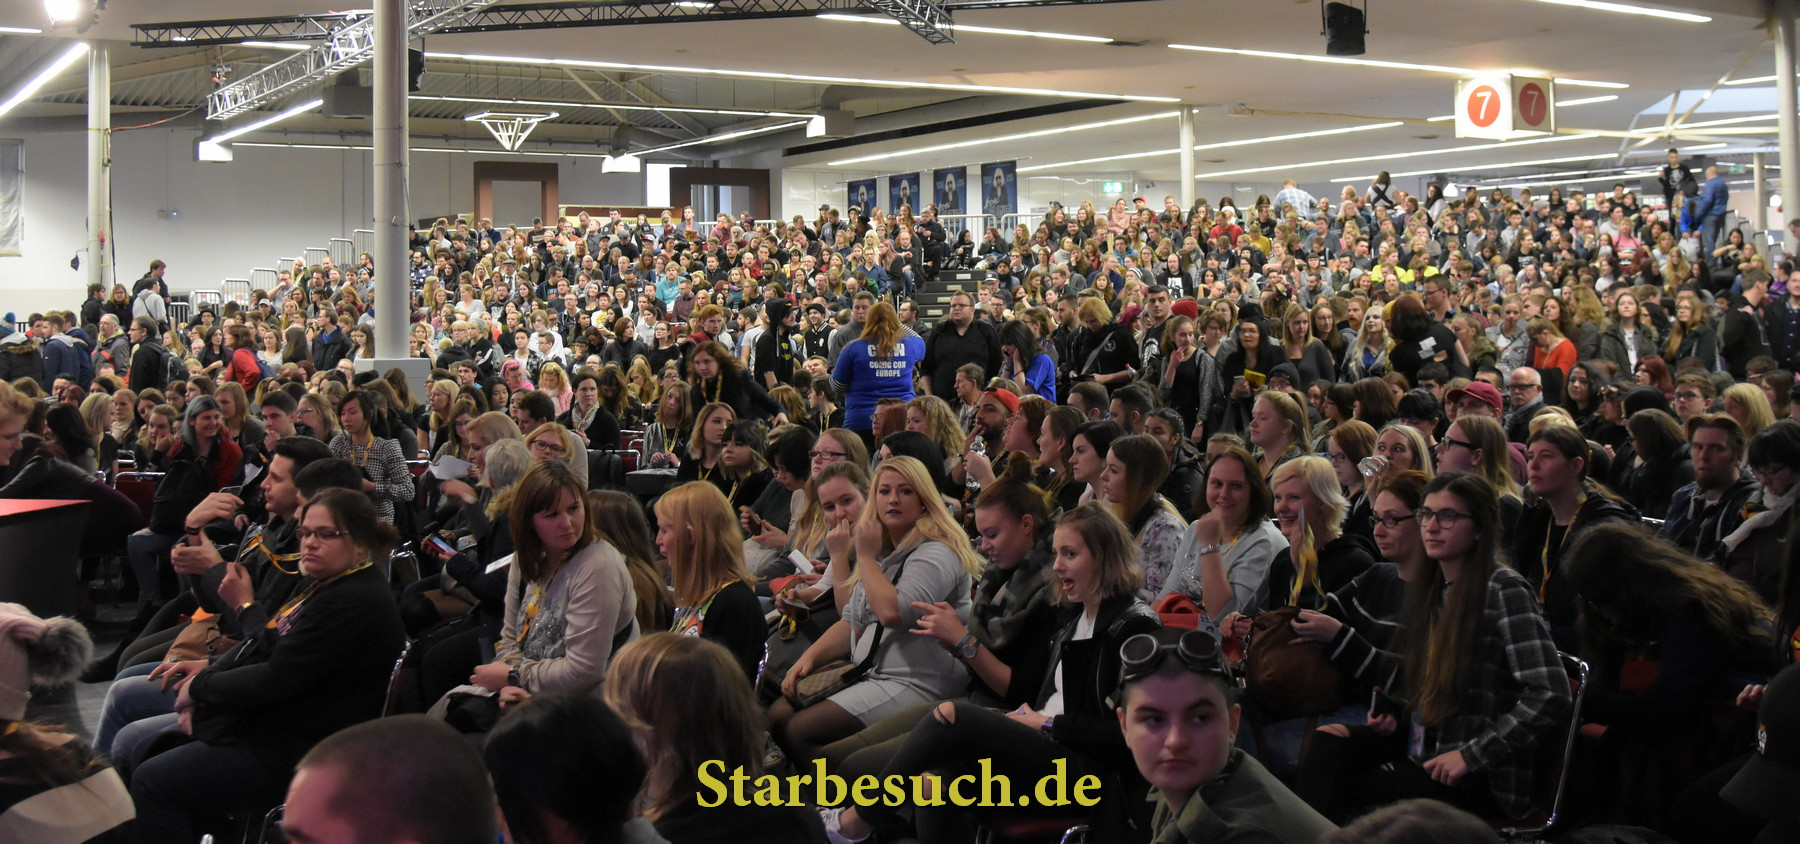 Dortmund, Germany - December 9th 2017: Impression from German Comic Con Dortmund: Photo Selection. More than 30 celebrities attended the event to meet their fans, sign autographs and do photoshoots.